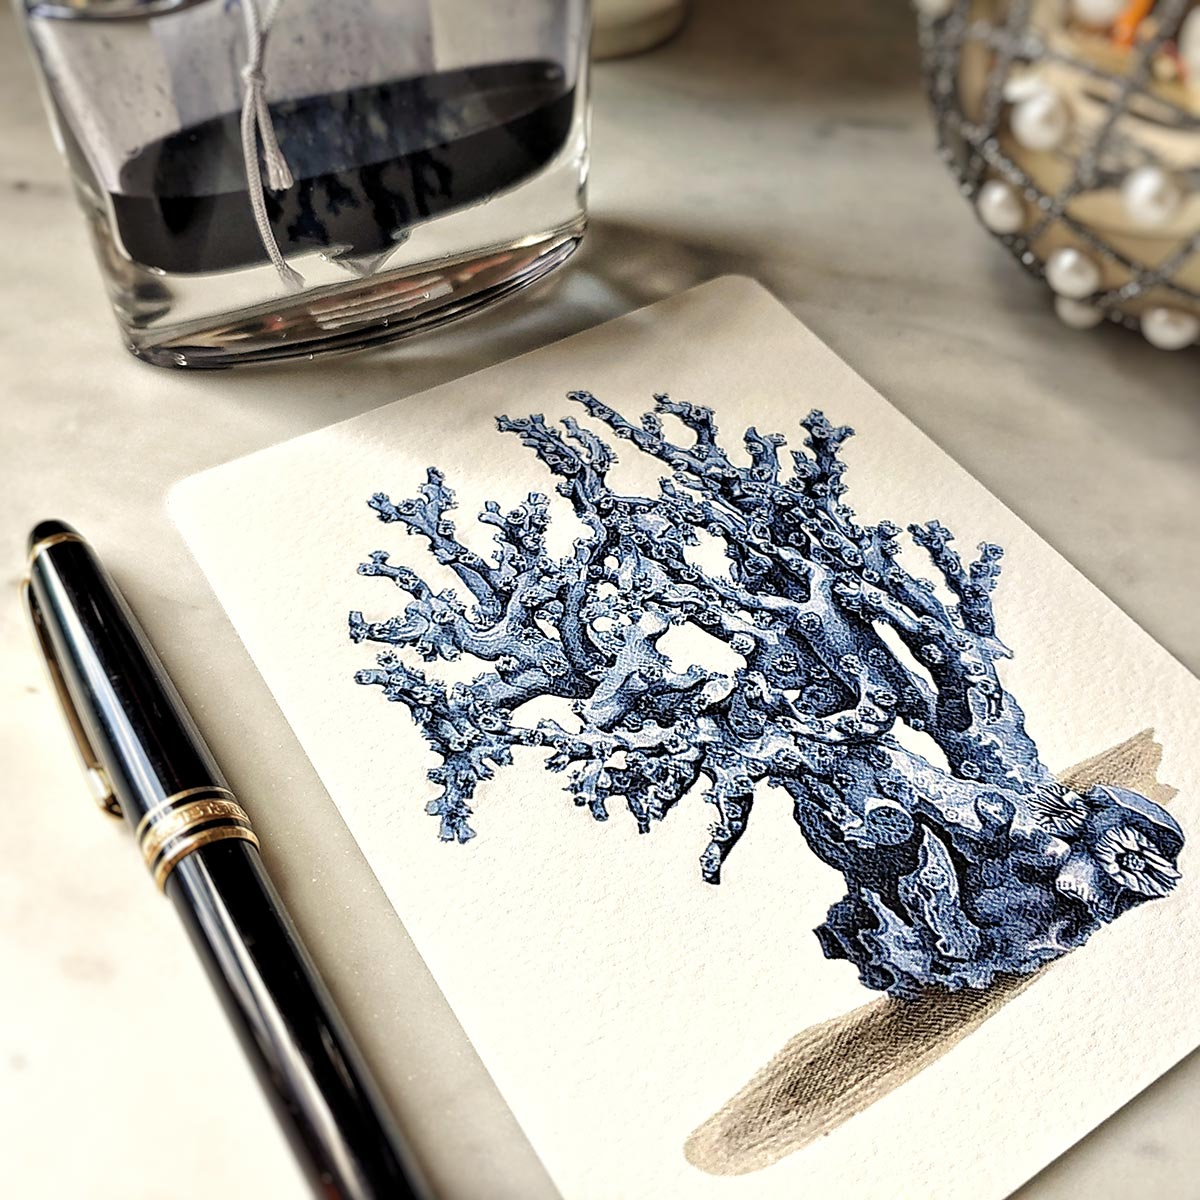 The Punctilious Mr. P's 'Blue Sea Fan & Coral' note card pack featuring a coral illustration